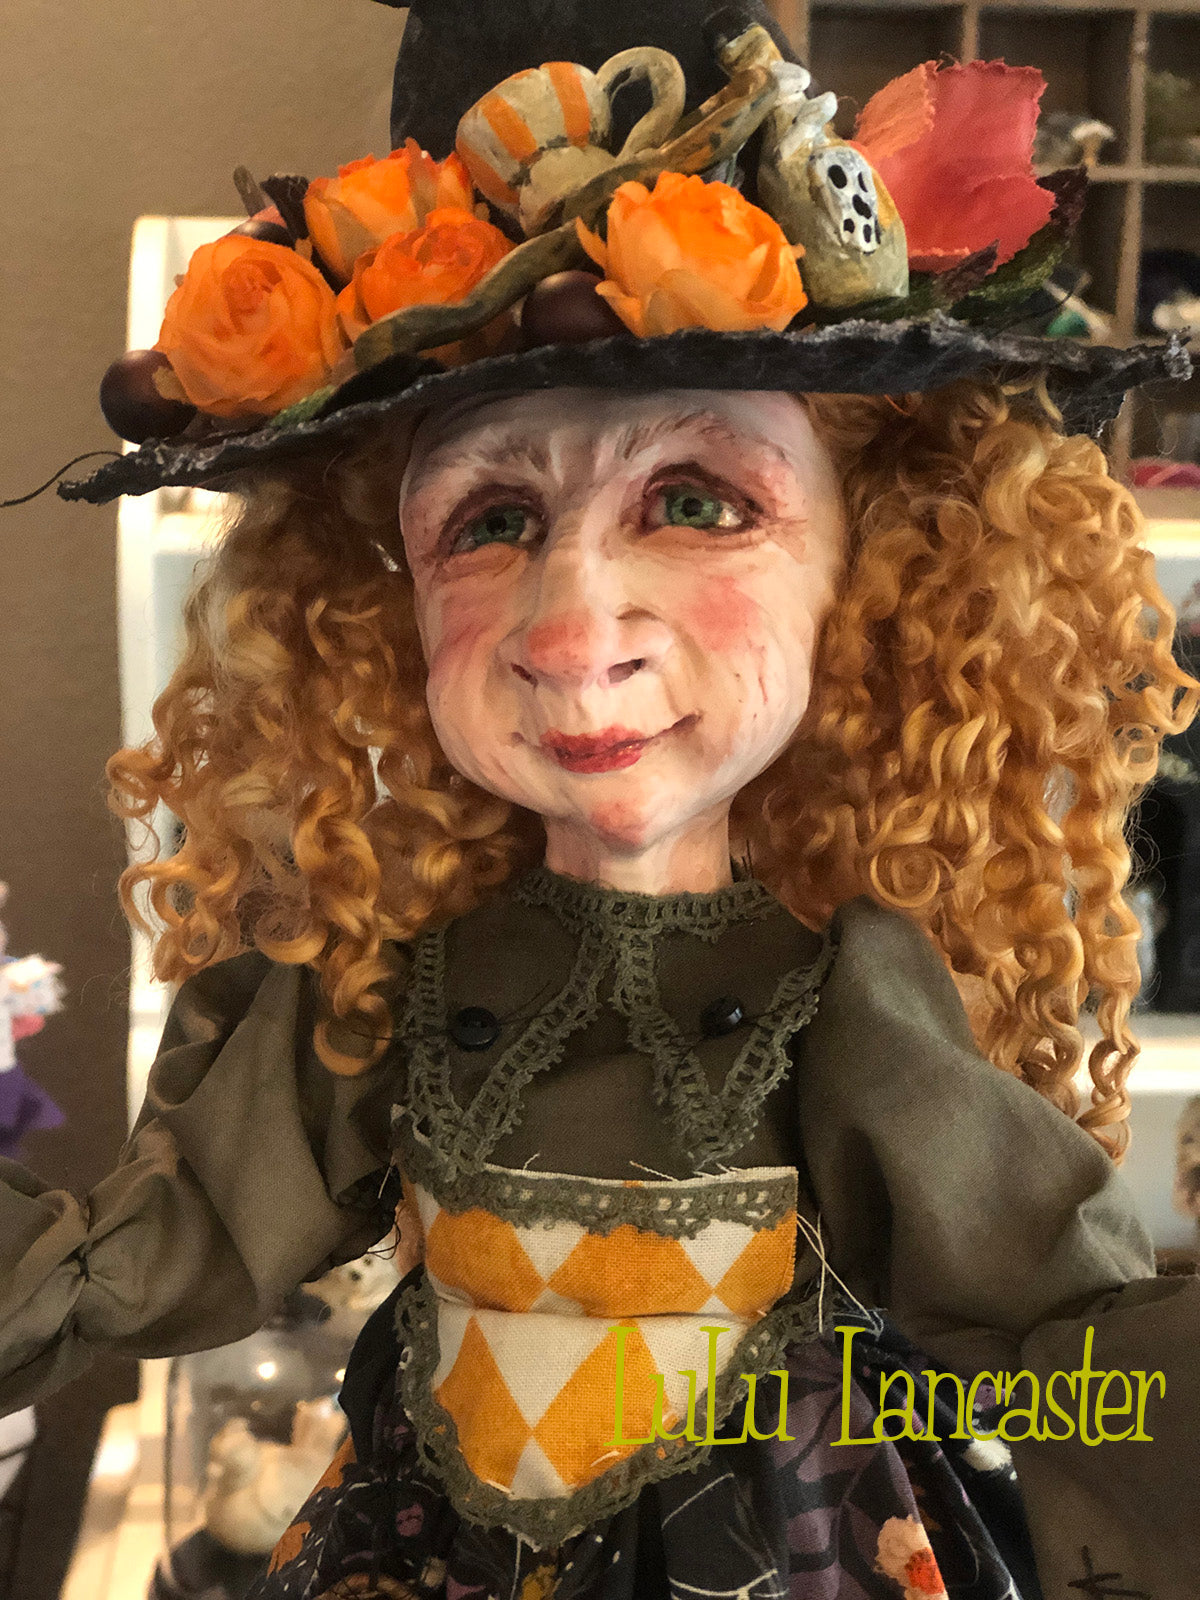 Farlen Malor Pumpkinella Wickety Witch OOAK Large Art Doll LuLu Lancaster